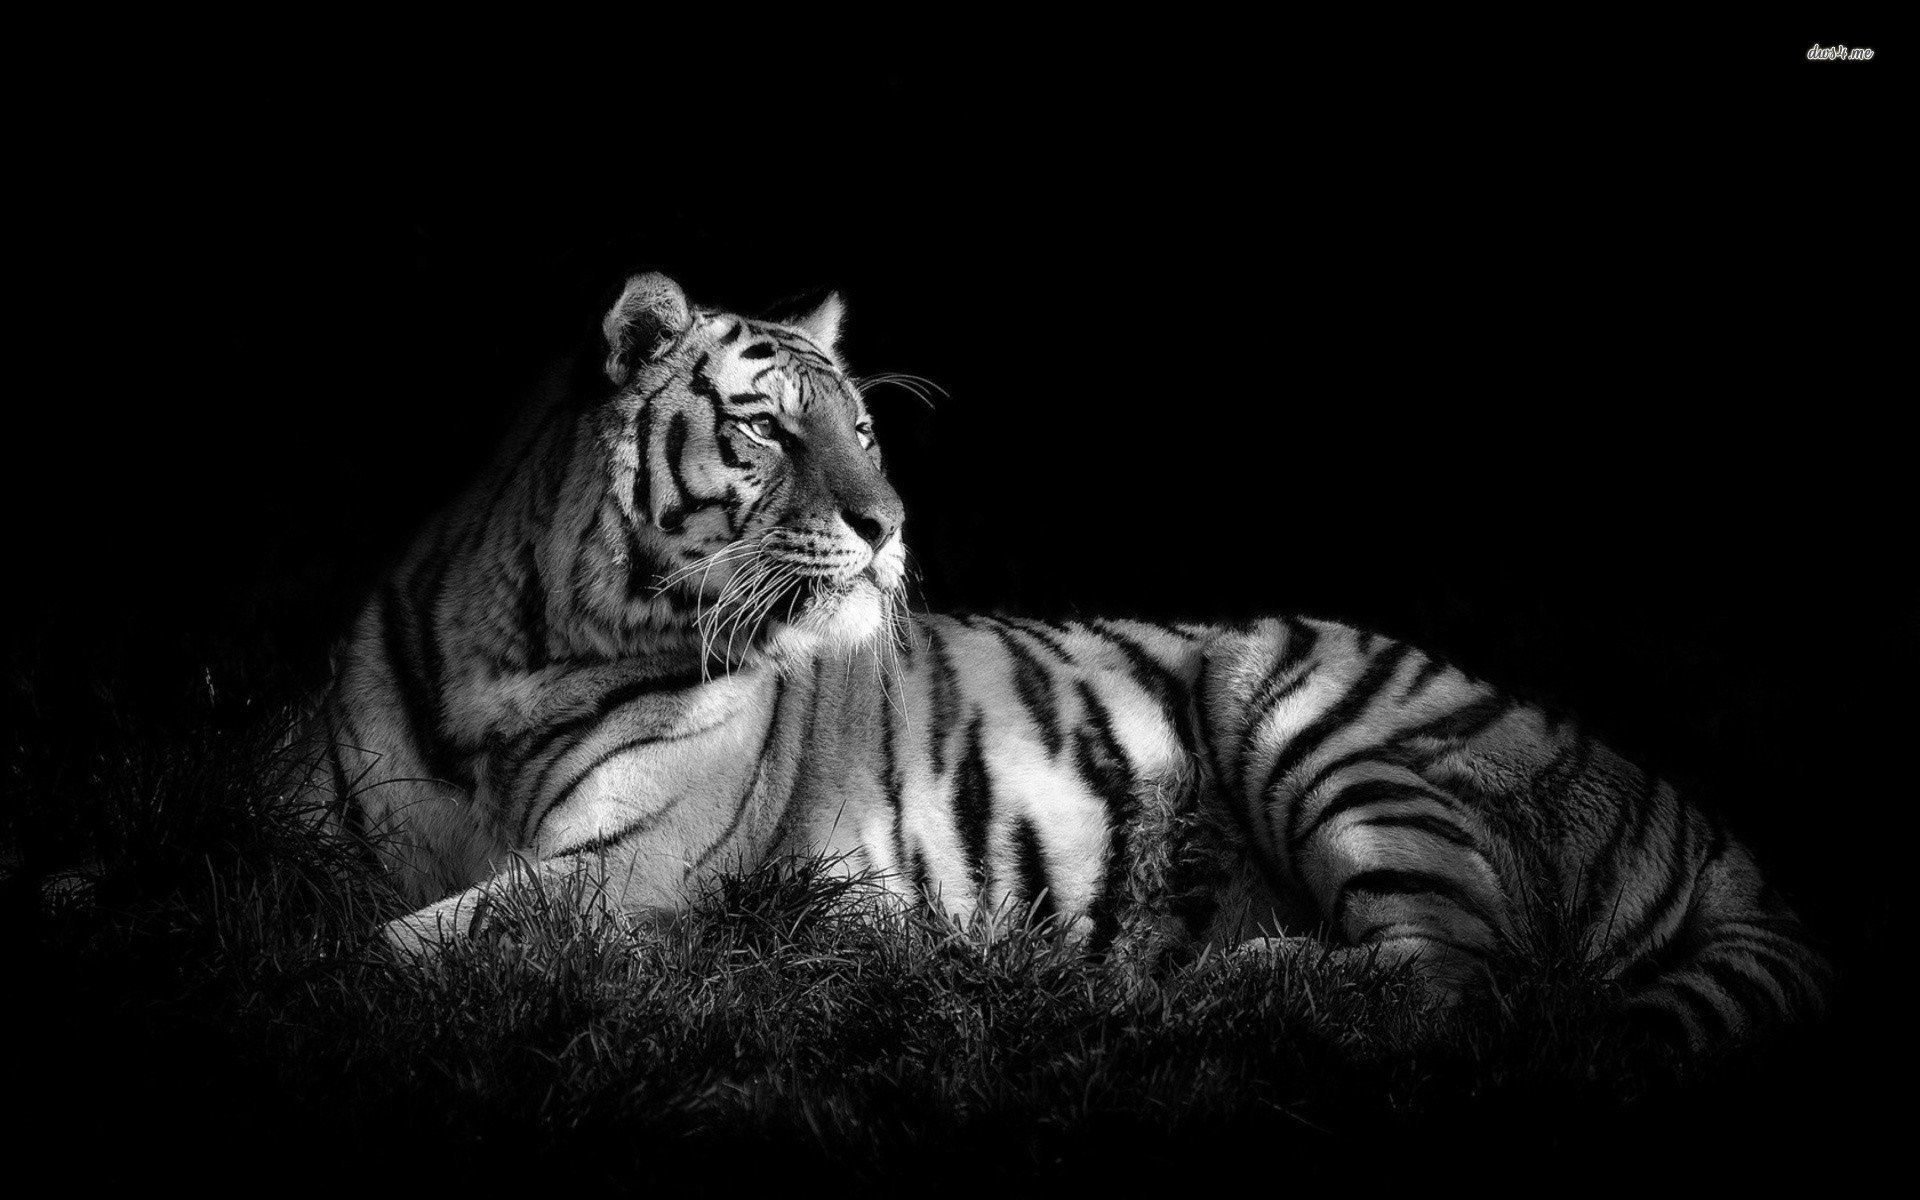 Tiger In Black White Pc Wallpaper Black And White Tiger Hd In Animal Wallpapers Was Added